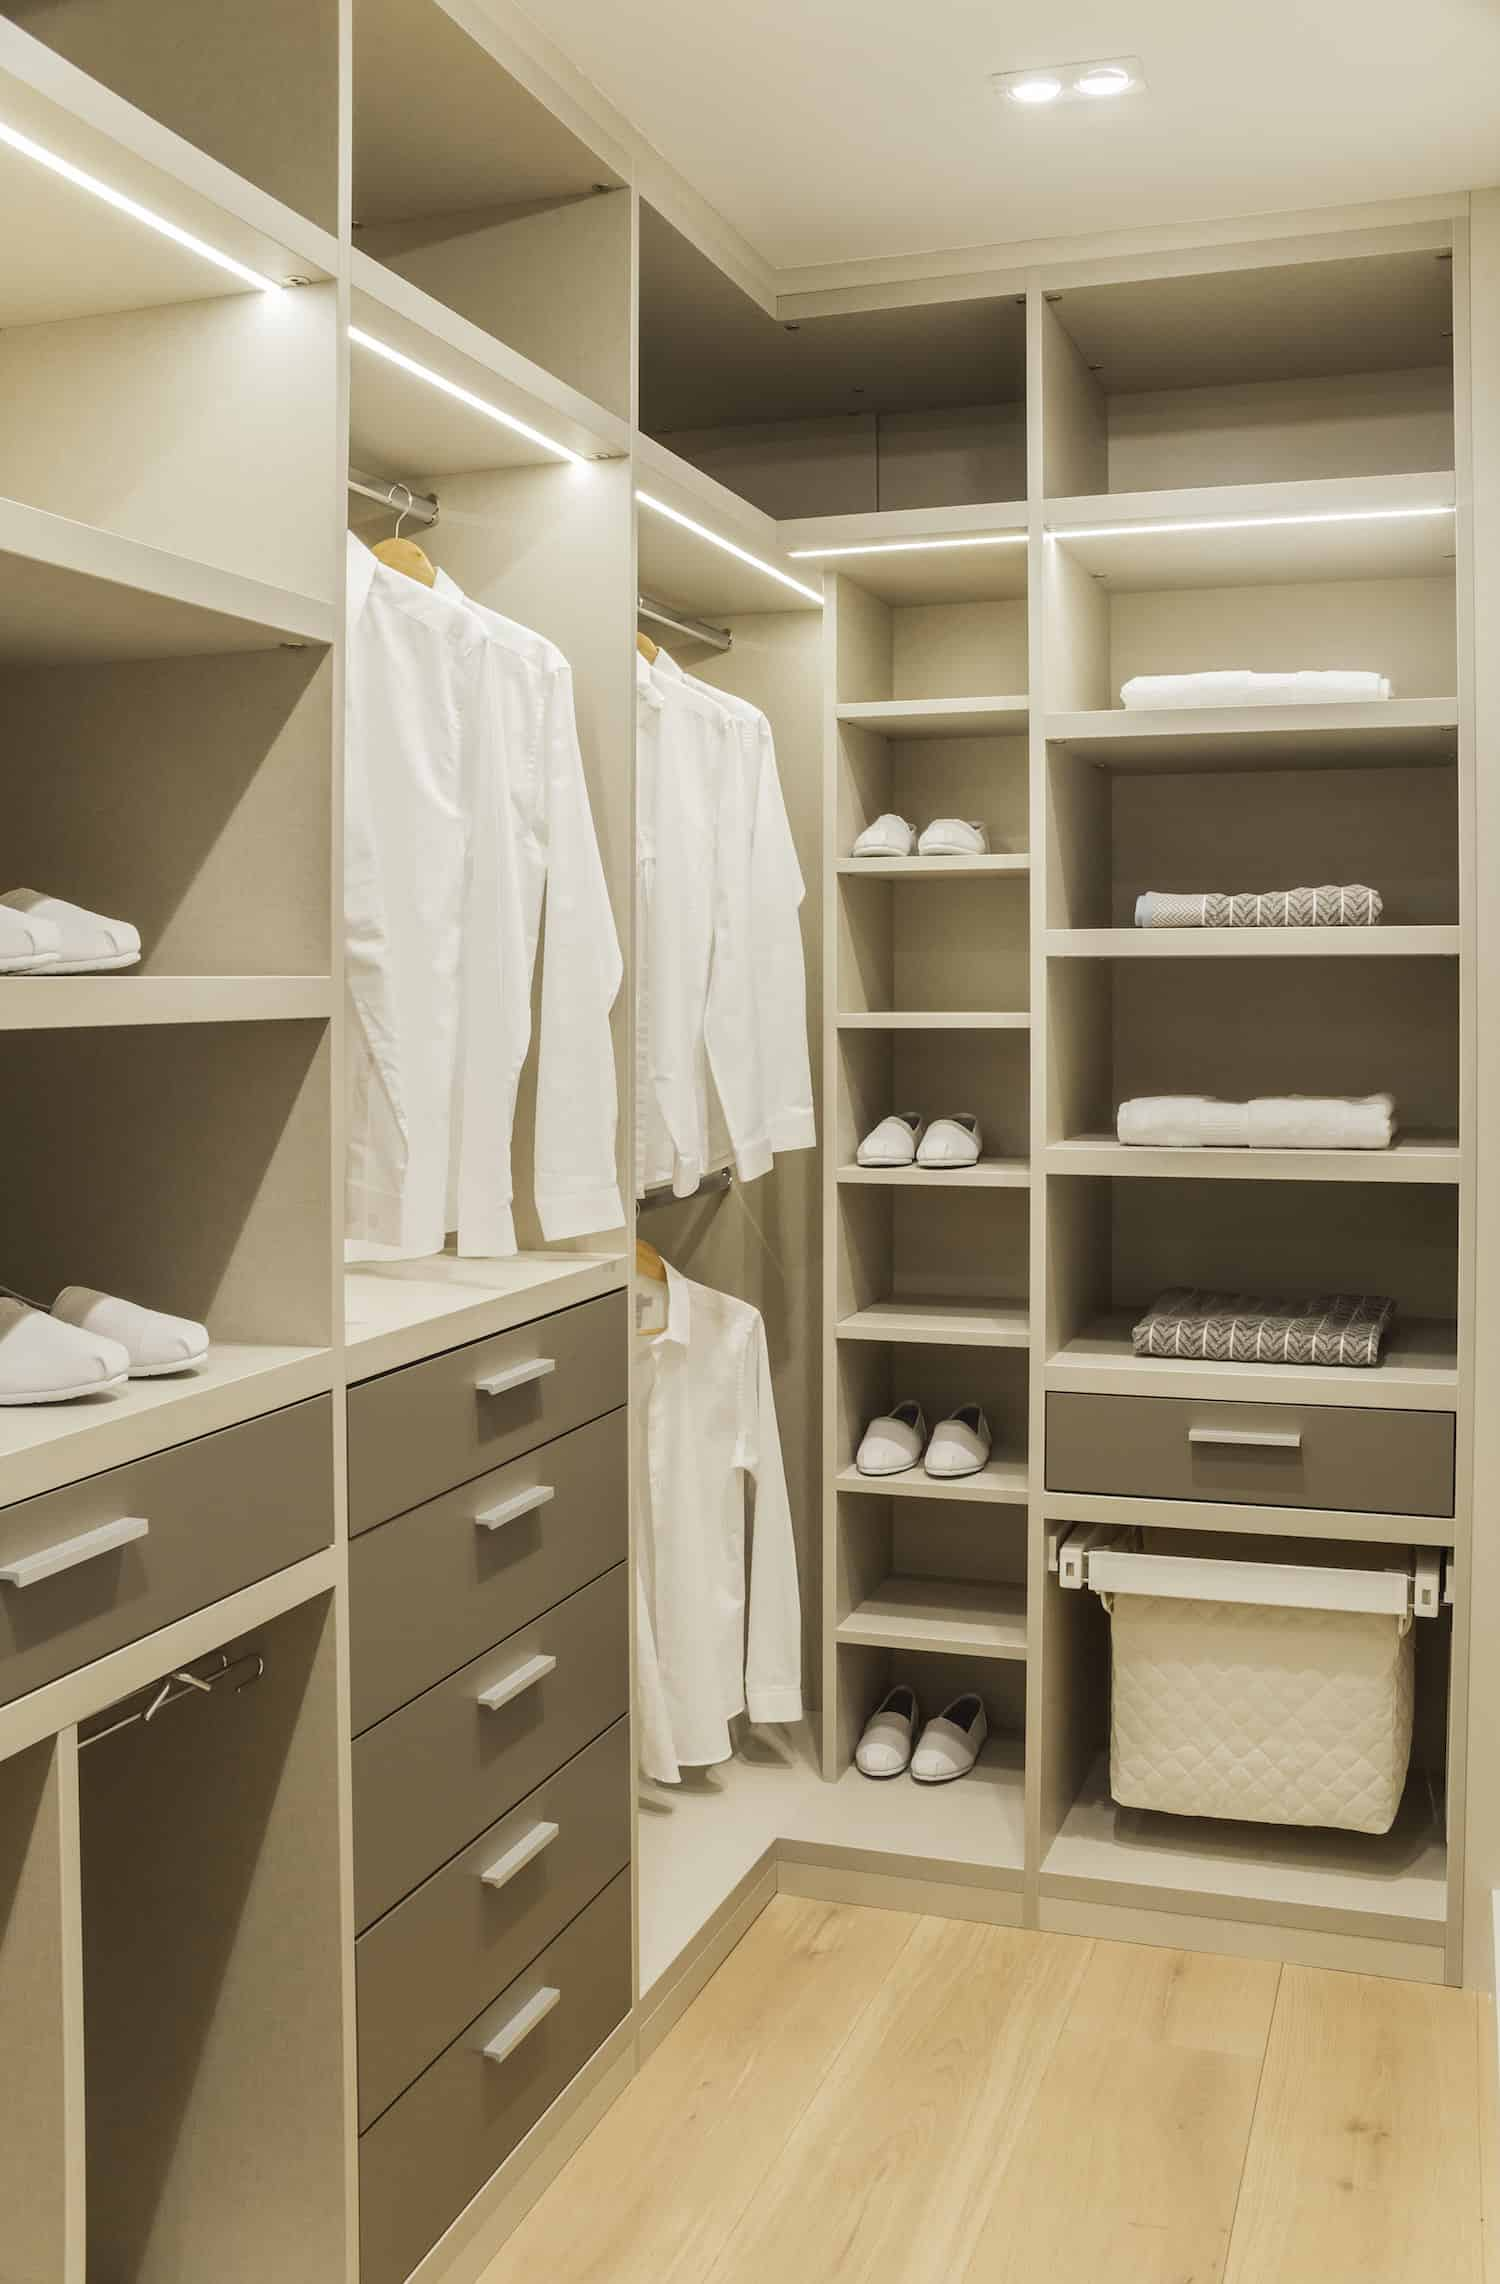 The walk-in closet is custom built and offers storage for shirts, suits, shoes, sweaters - all types of apparel and accessories. It's a sizeable space and very pleasing to the eye. I love the different beige tones used throughout.